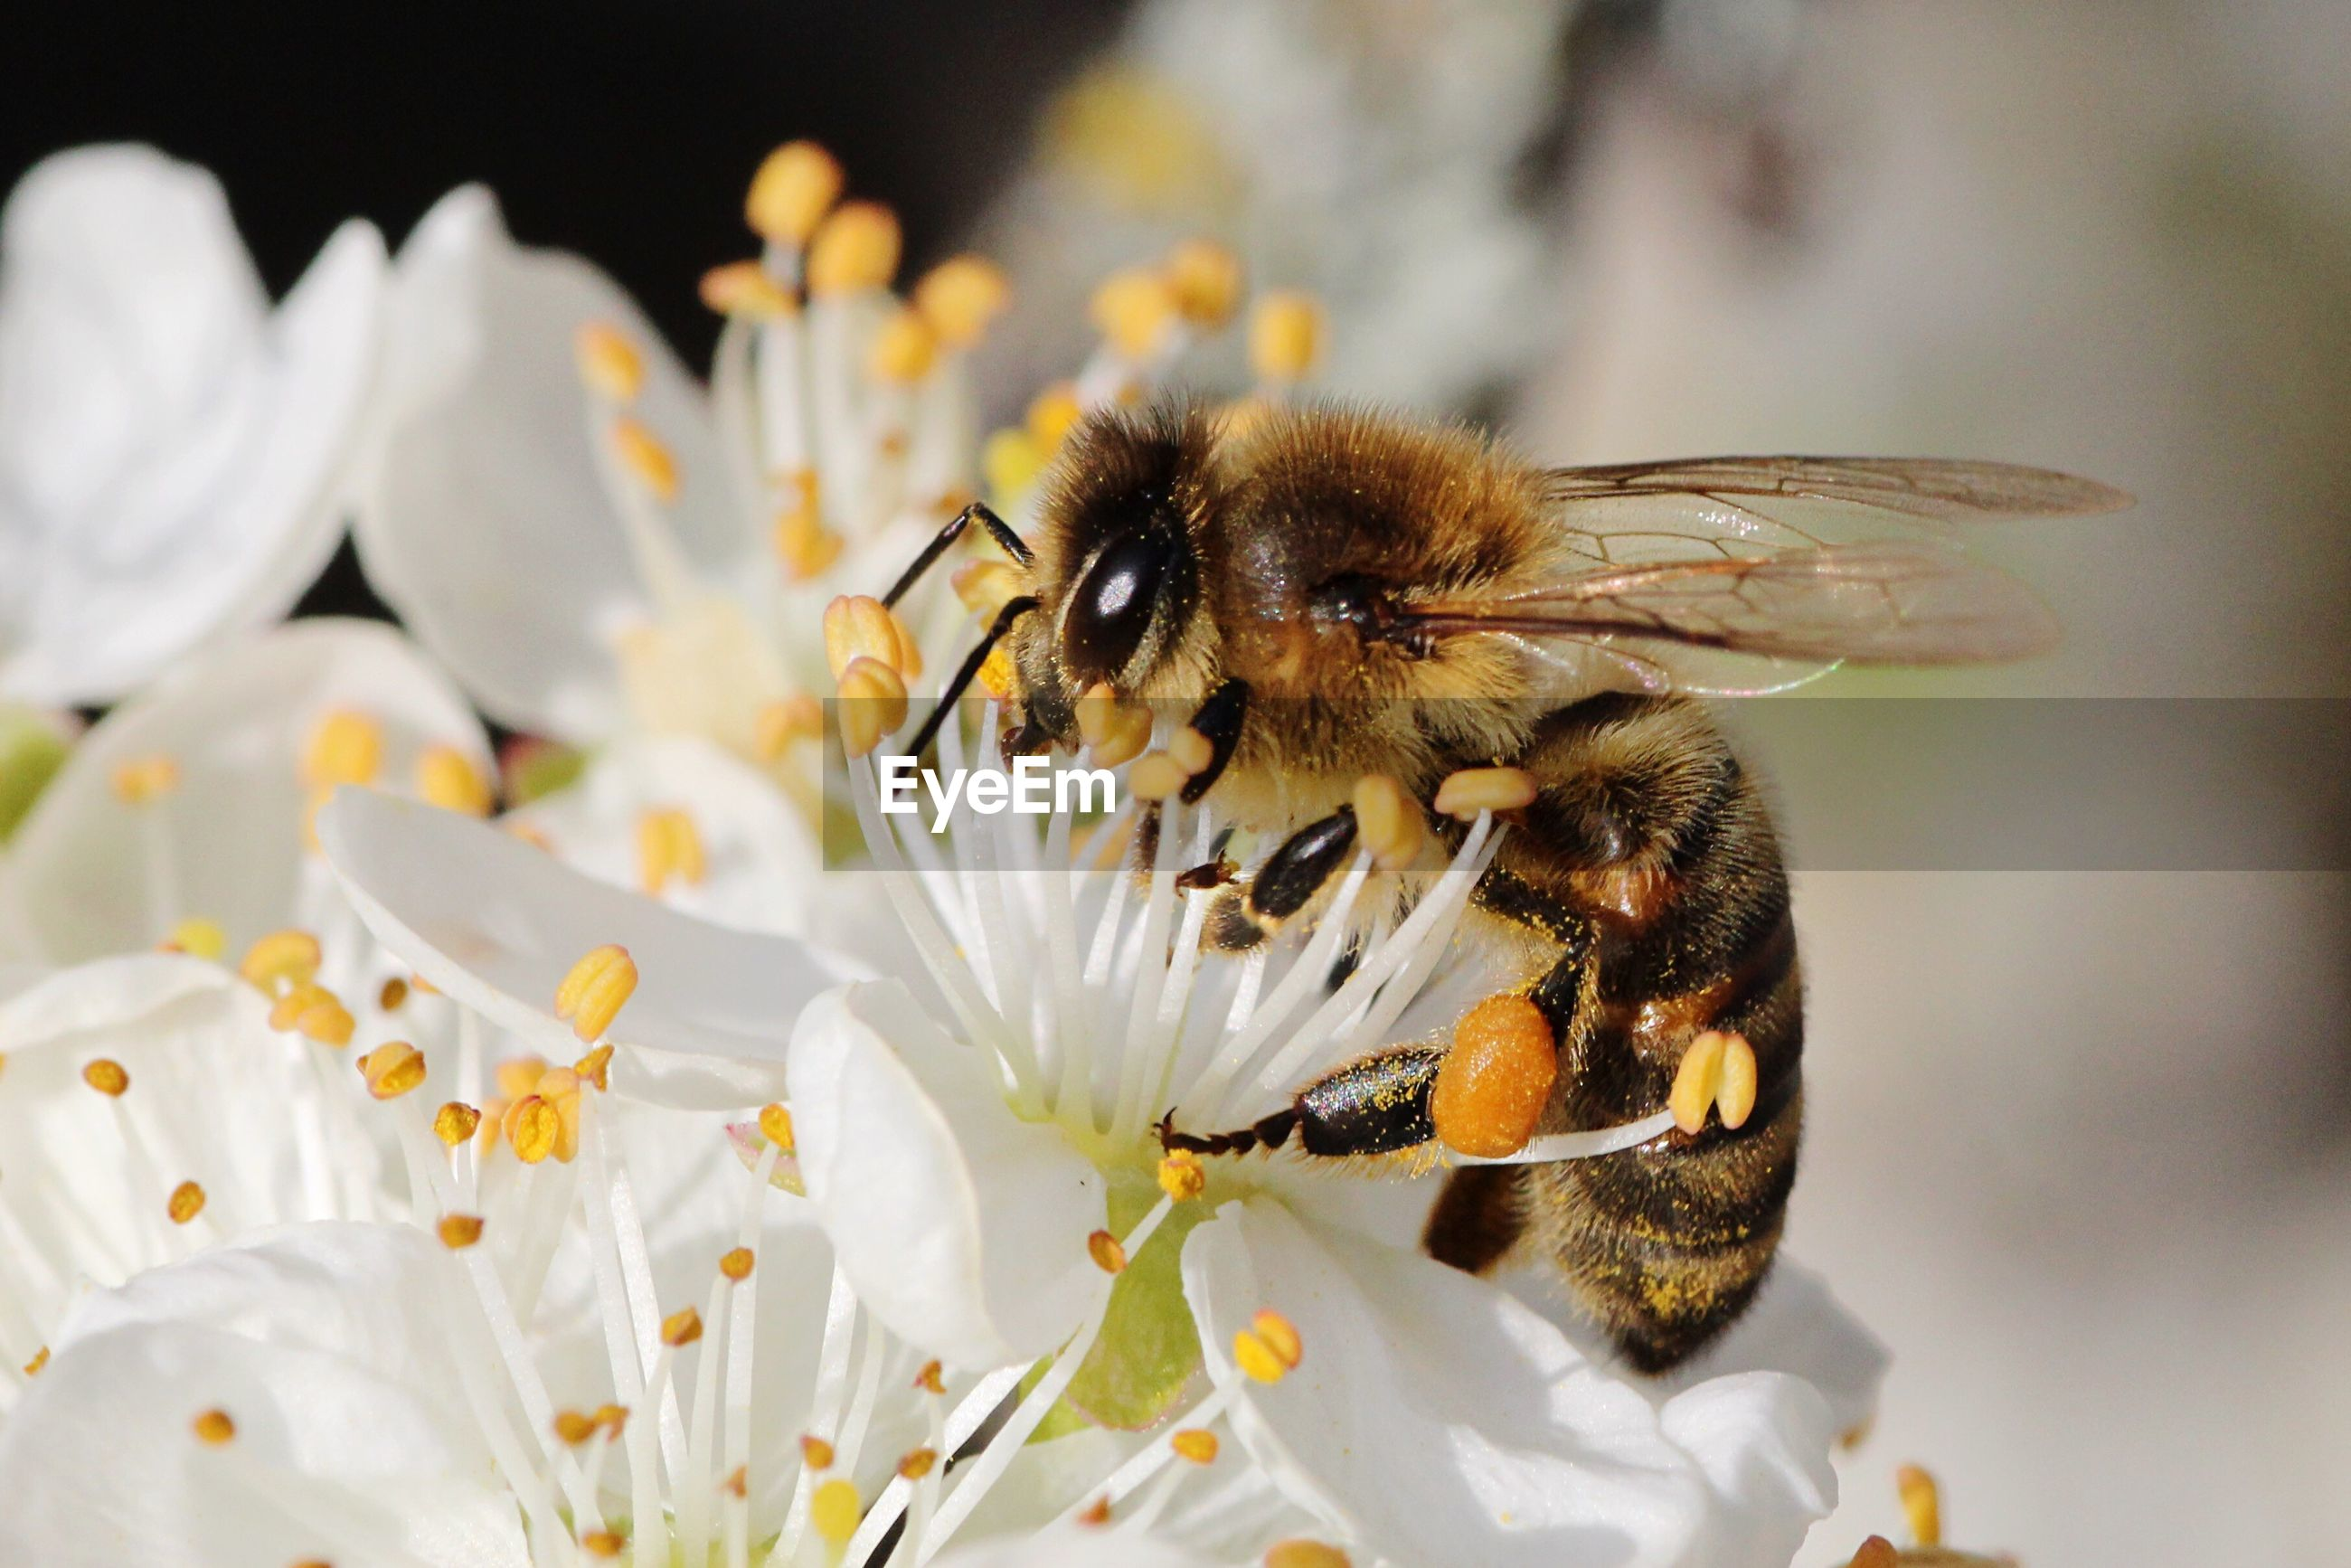 Close-up of bee pollinating white flower